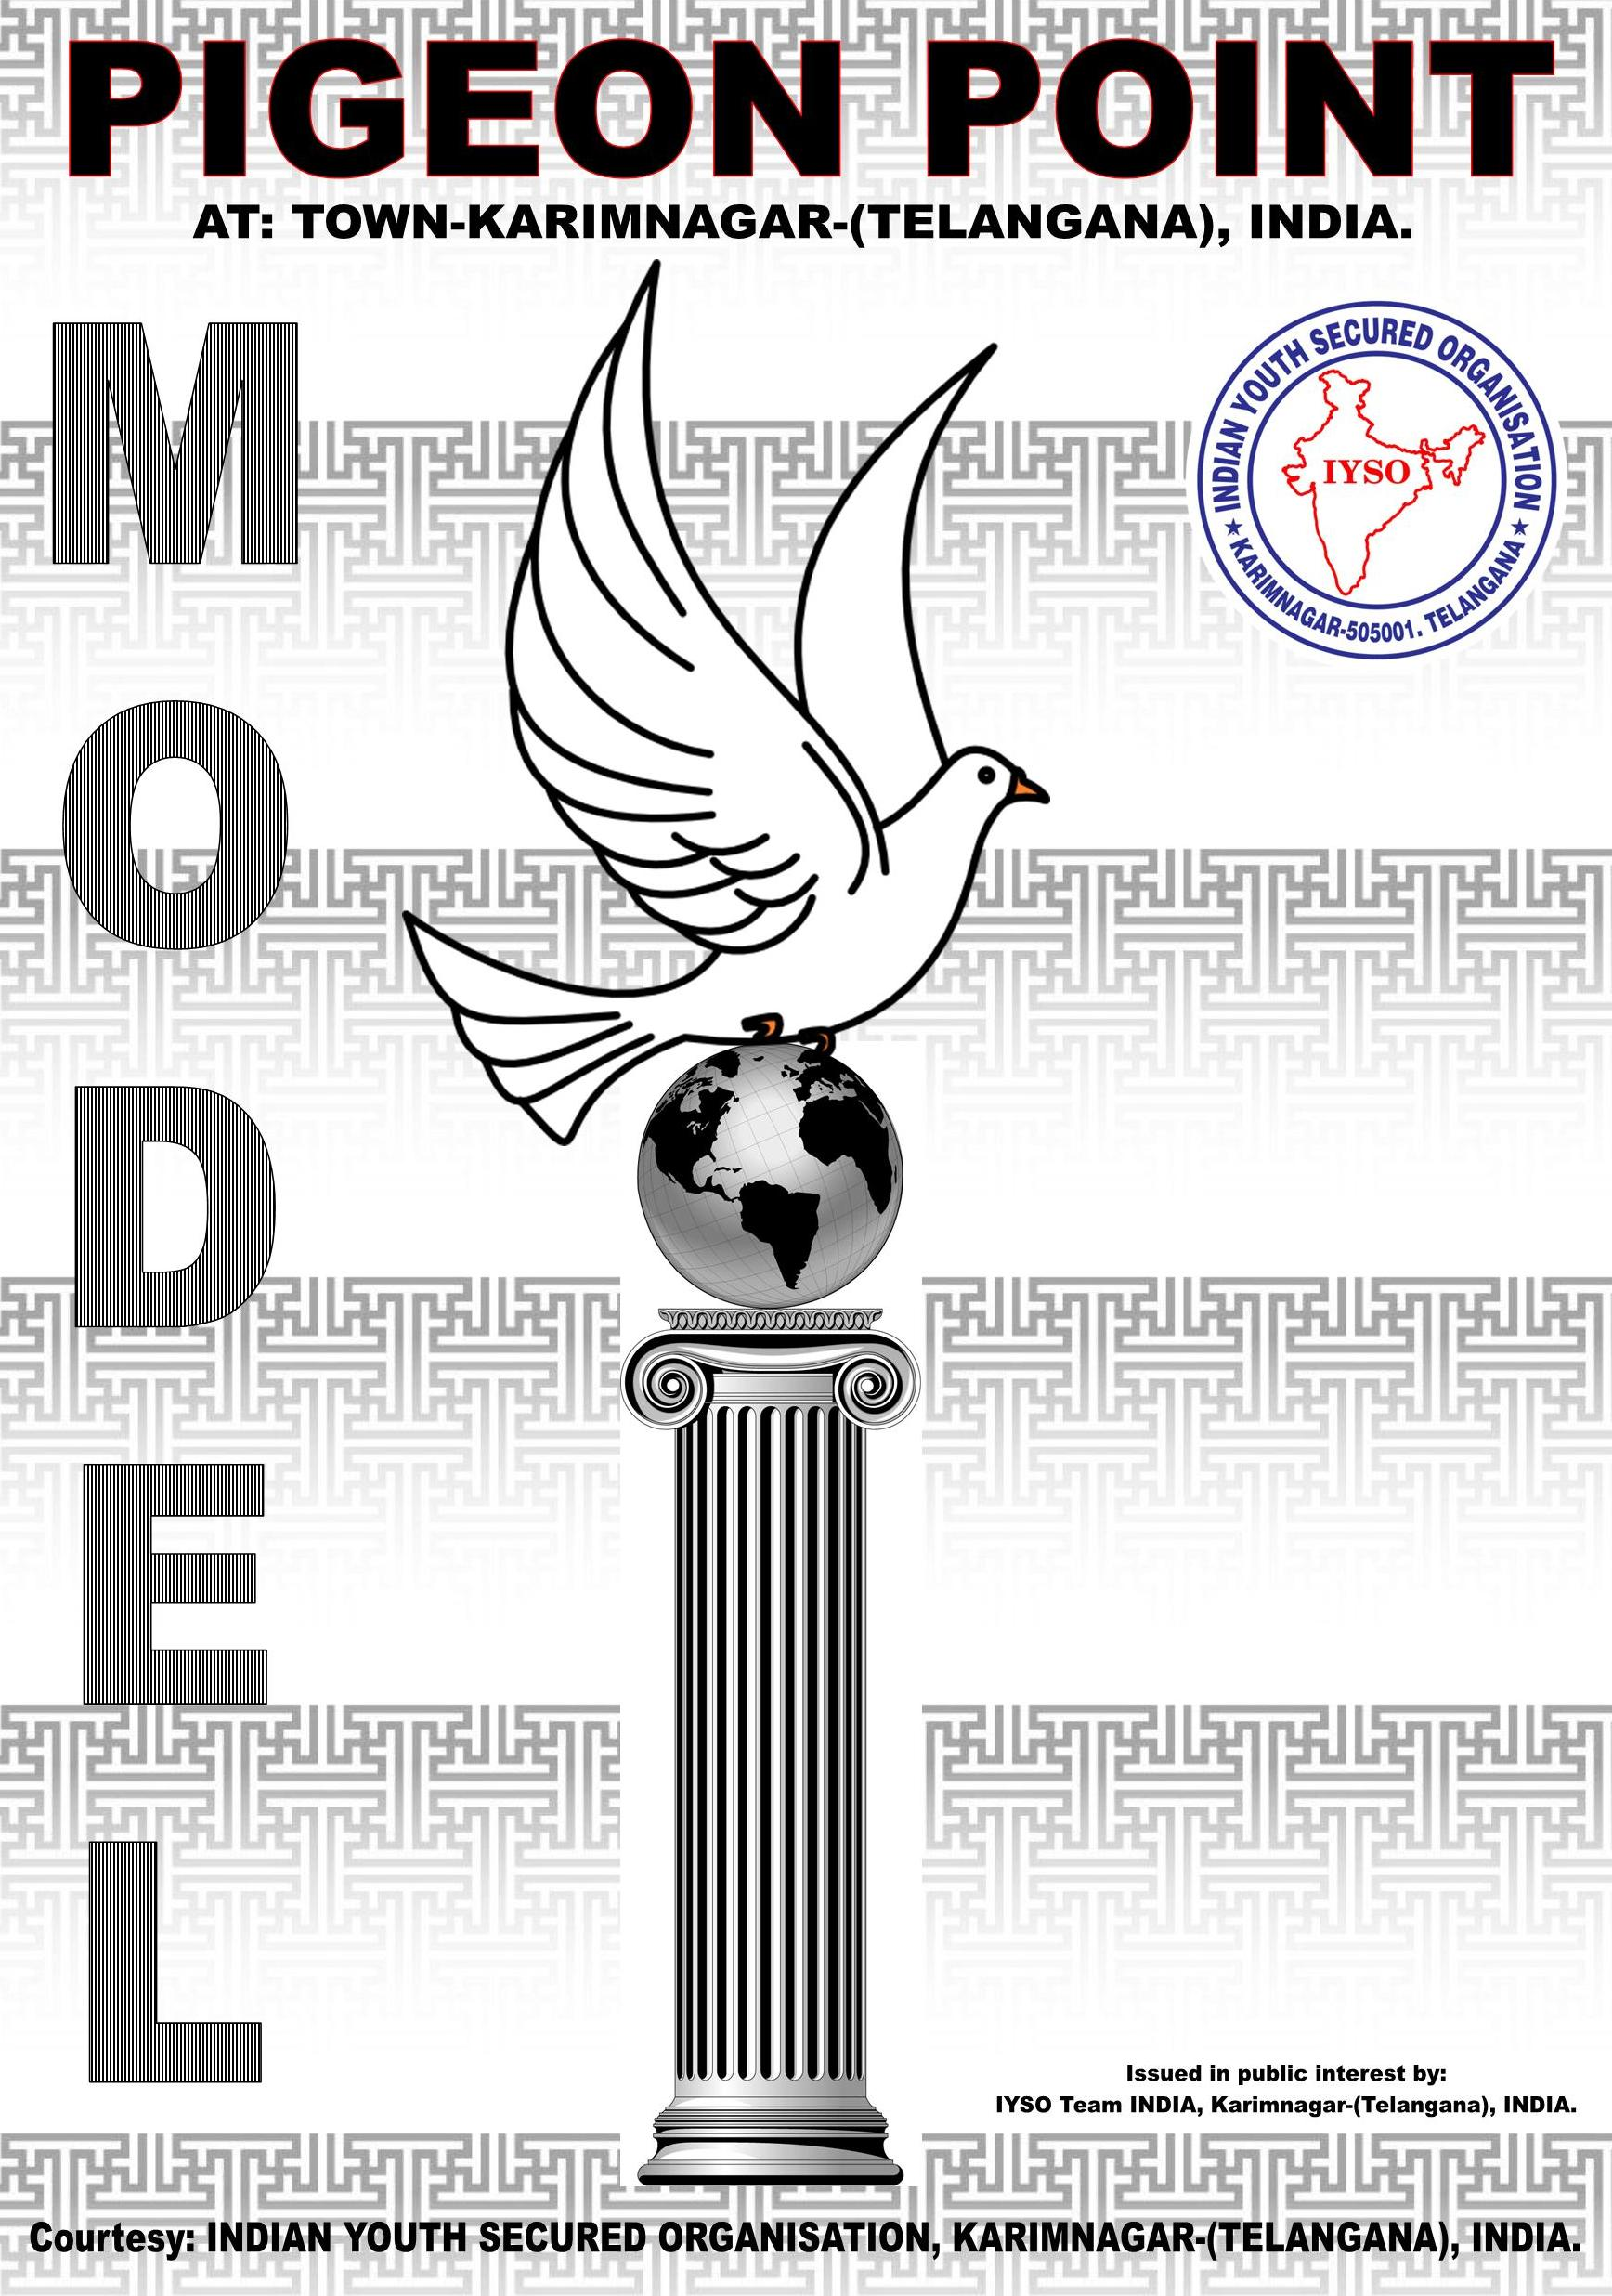 Pigeon point symbol of world peace love unity very soon at pigeon point symbol of world peace love unity very soon at town karimnagar telangana india biocorpaavc